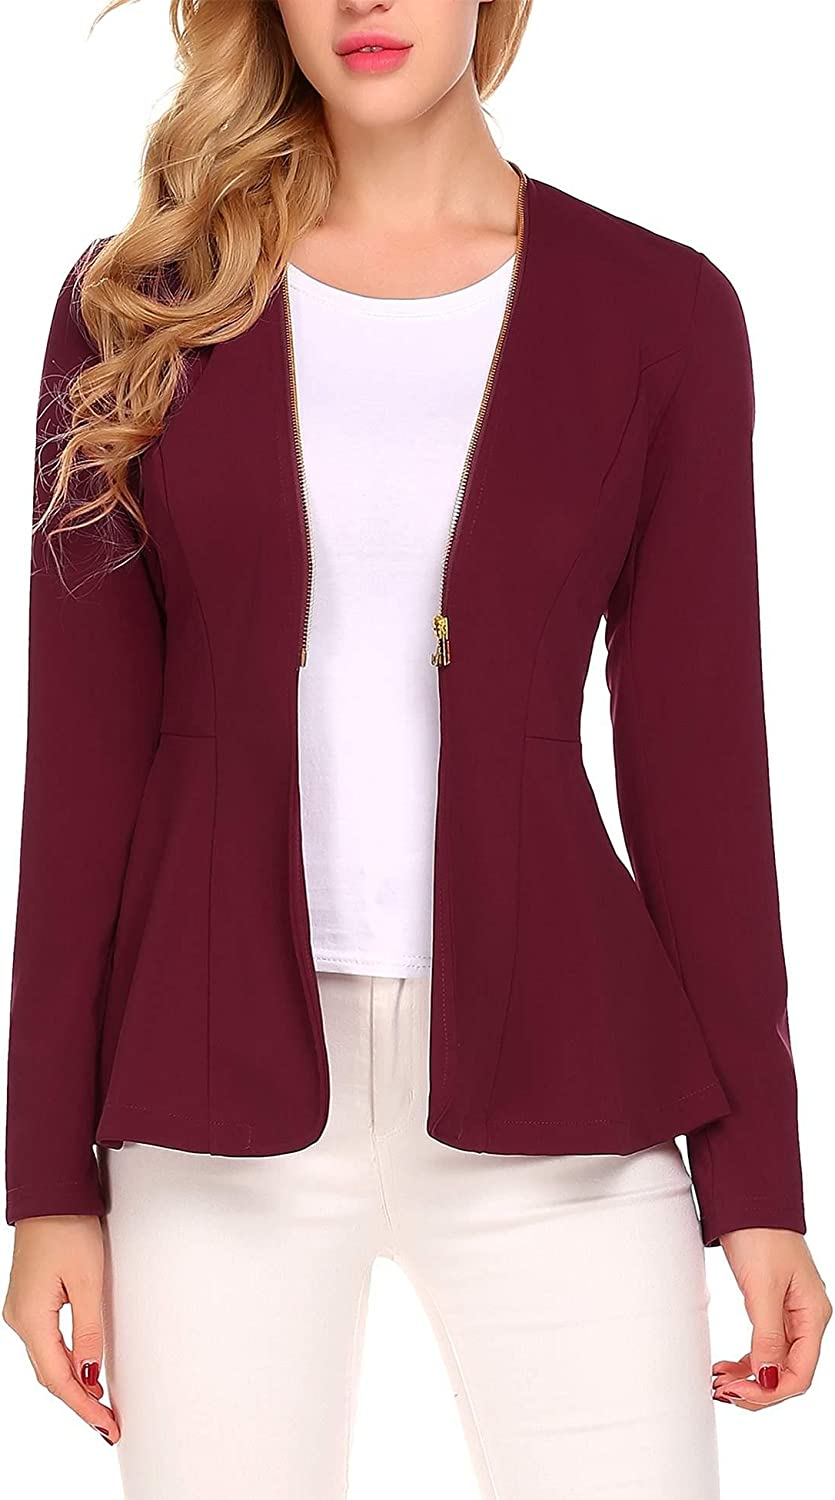 BURLADY Women's Casual Long Sleeve Open Front Zipper Cardigan Blazer Work Office Jacket Suits